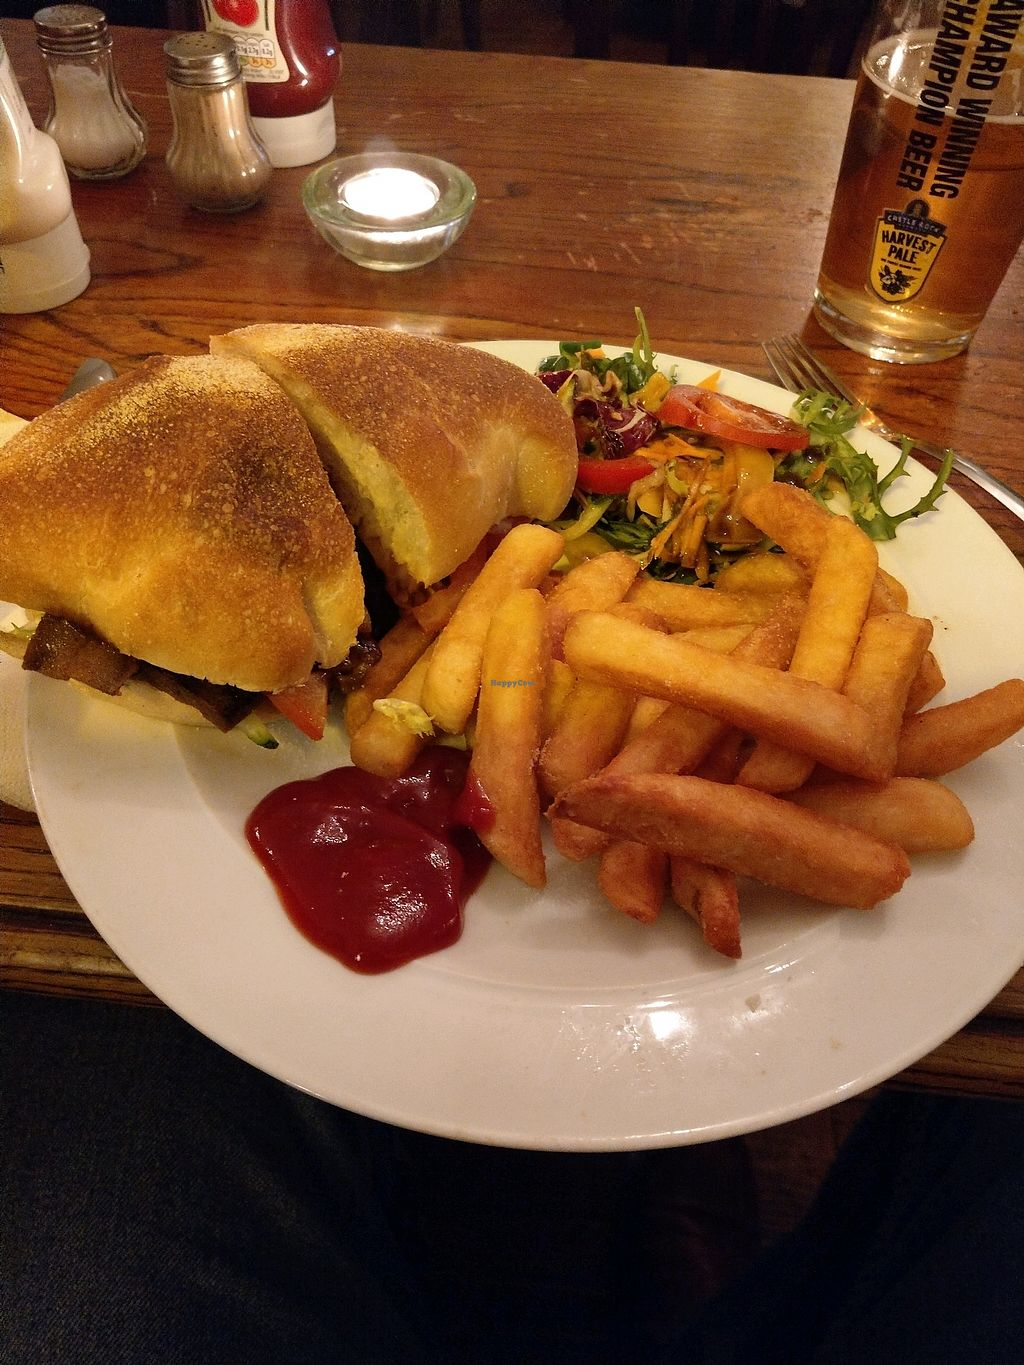 "Photo of The Peacock  by <a href=""/members/profile/Garyjohn"">Garyjohn</a> <br/>steak and Onion Sandwich <br/> February 9, 2018  - <a href='/contact/abuse/image/70771/356982'>Report</a>"